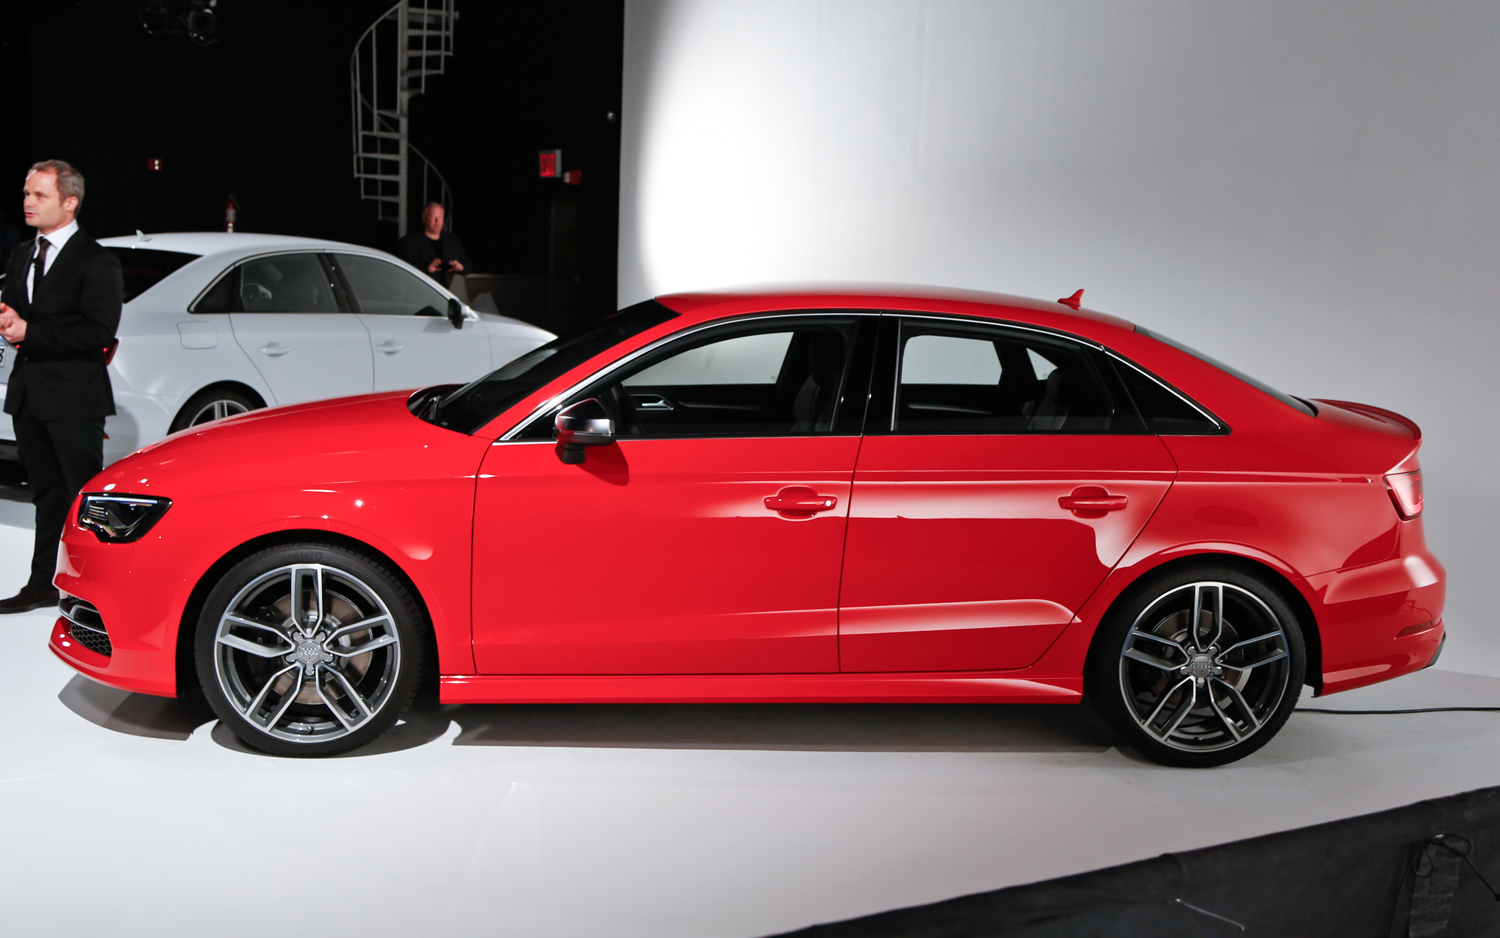 2015 Audi S3 Sedan Side View Auto Show (View 5 of 10)